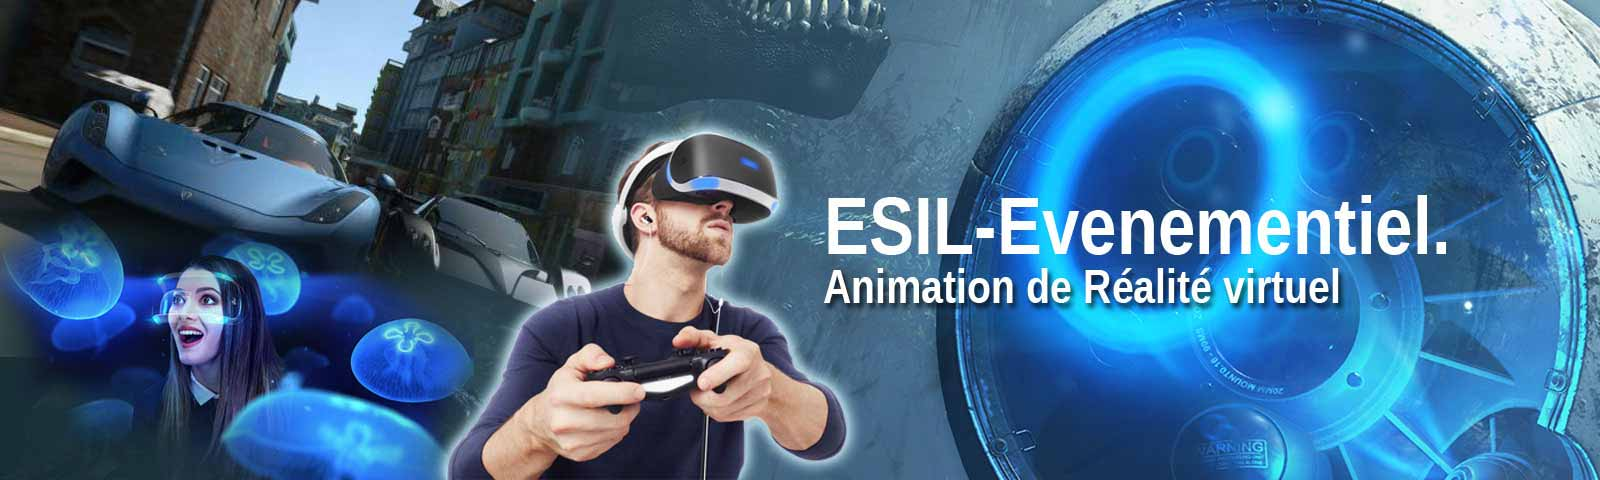 animation-realite-virtuelle-esil-evenementiel-3